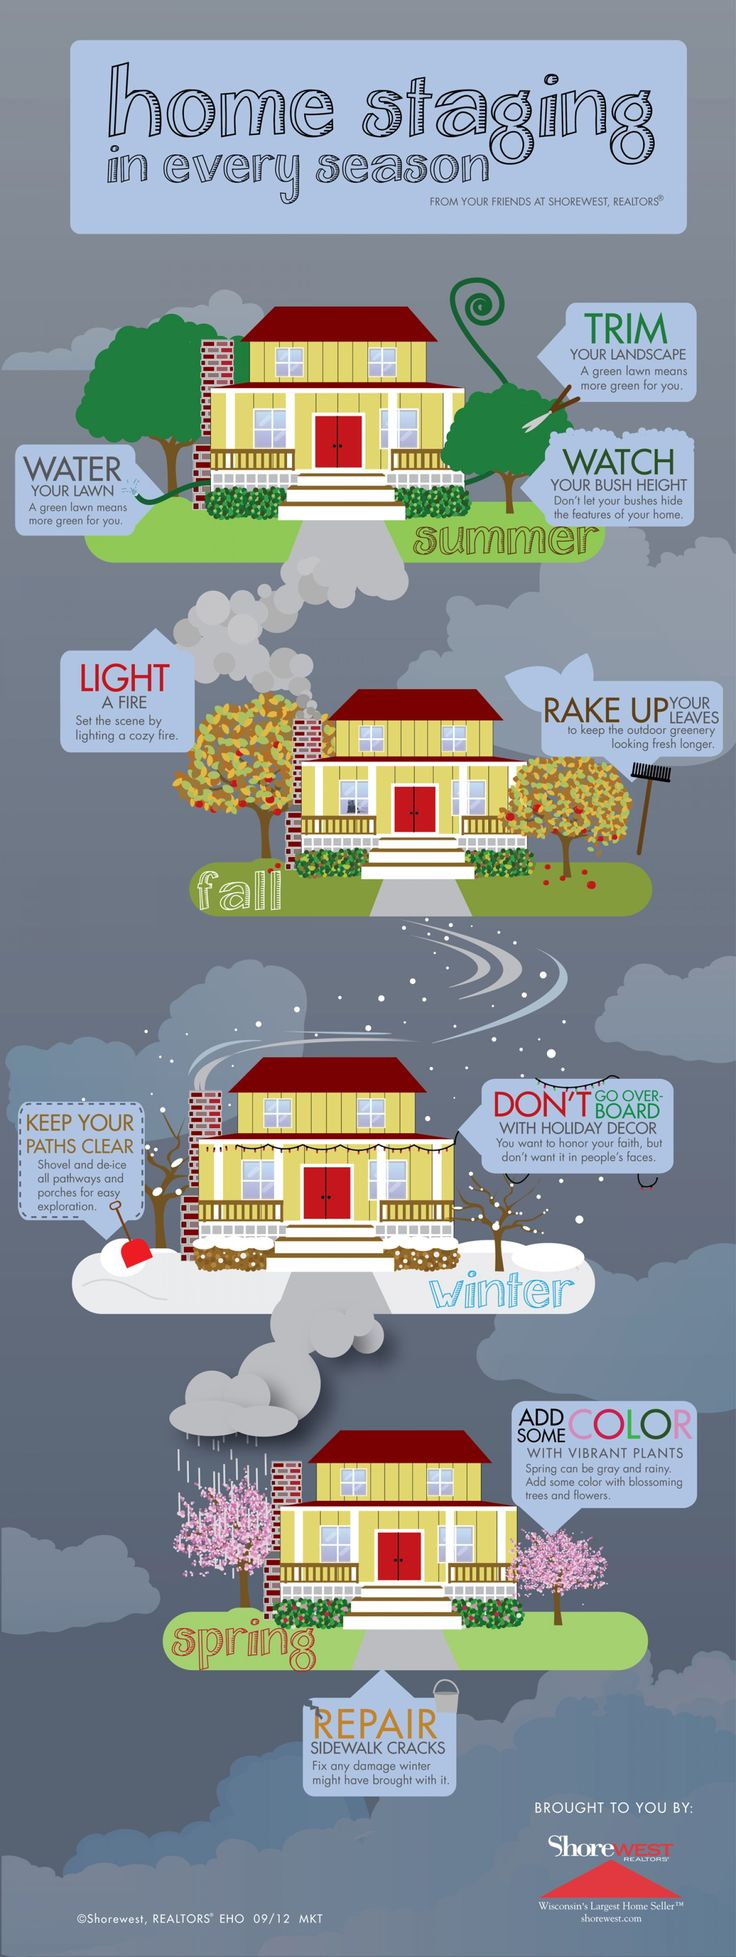 Home Staging for every season http://visual.ly/home-staging-every-season